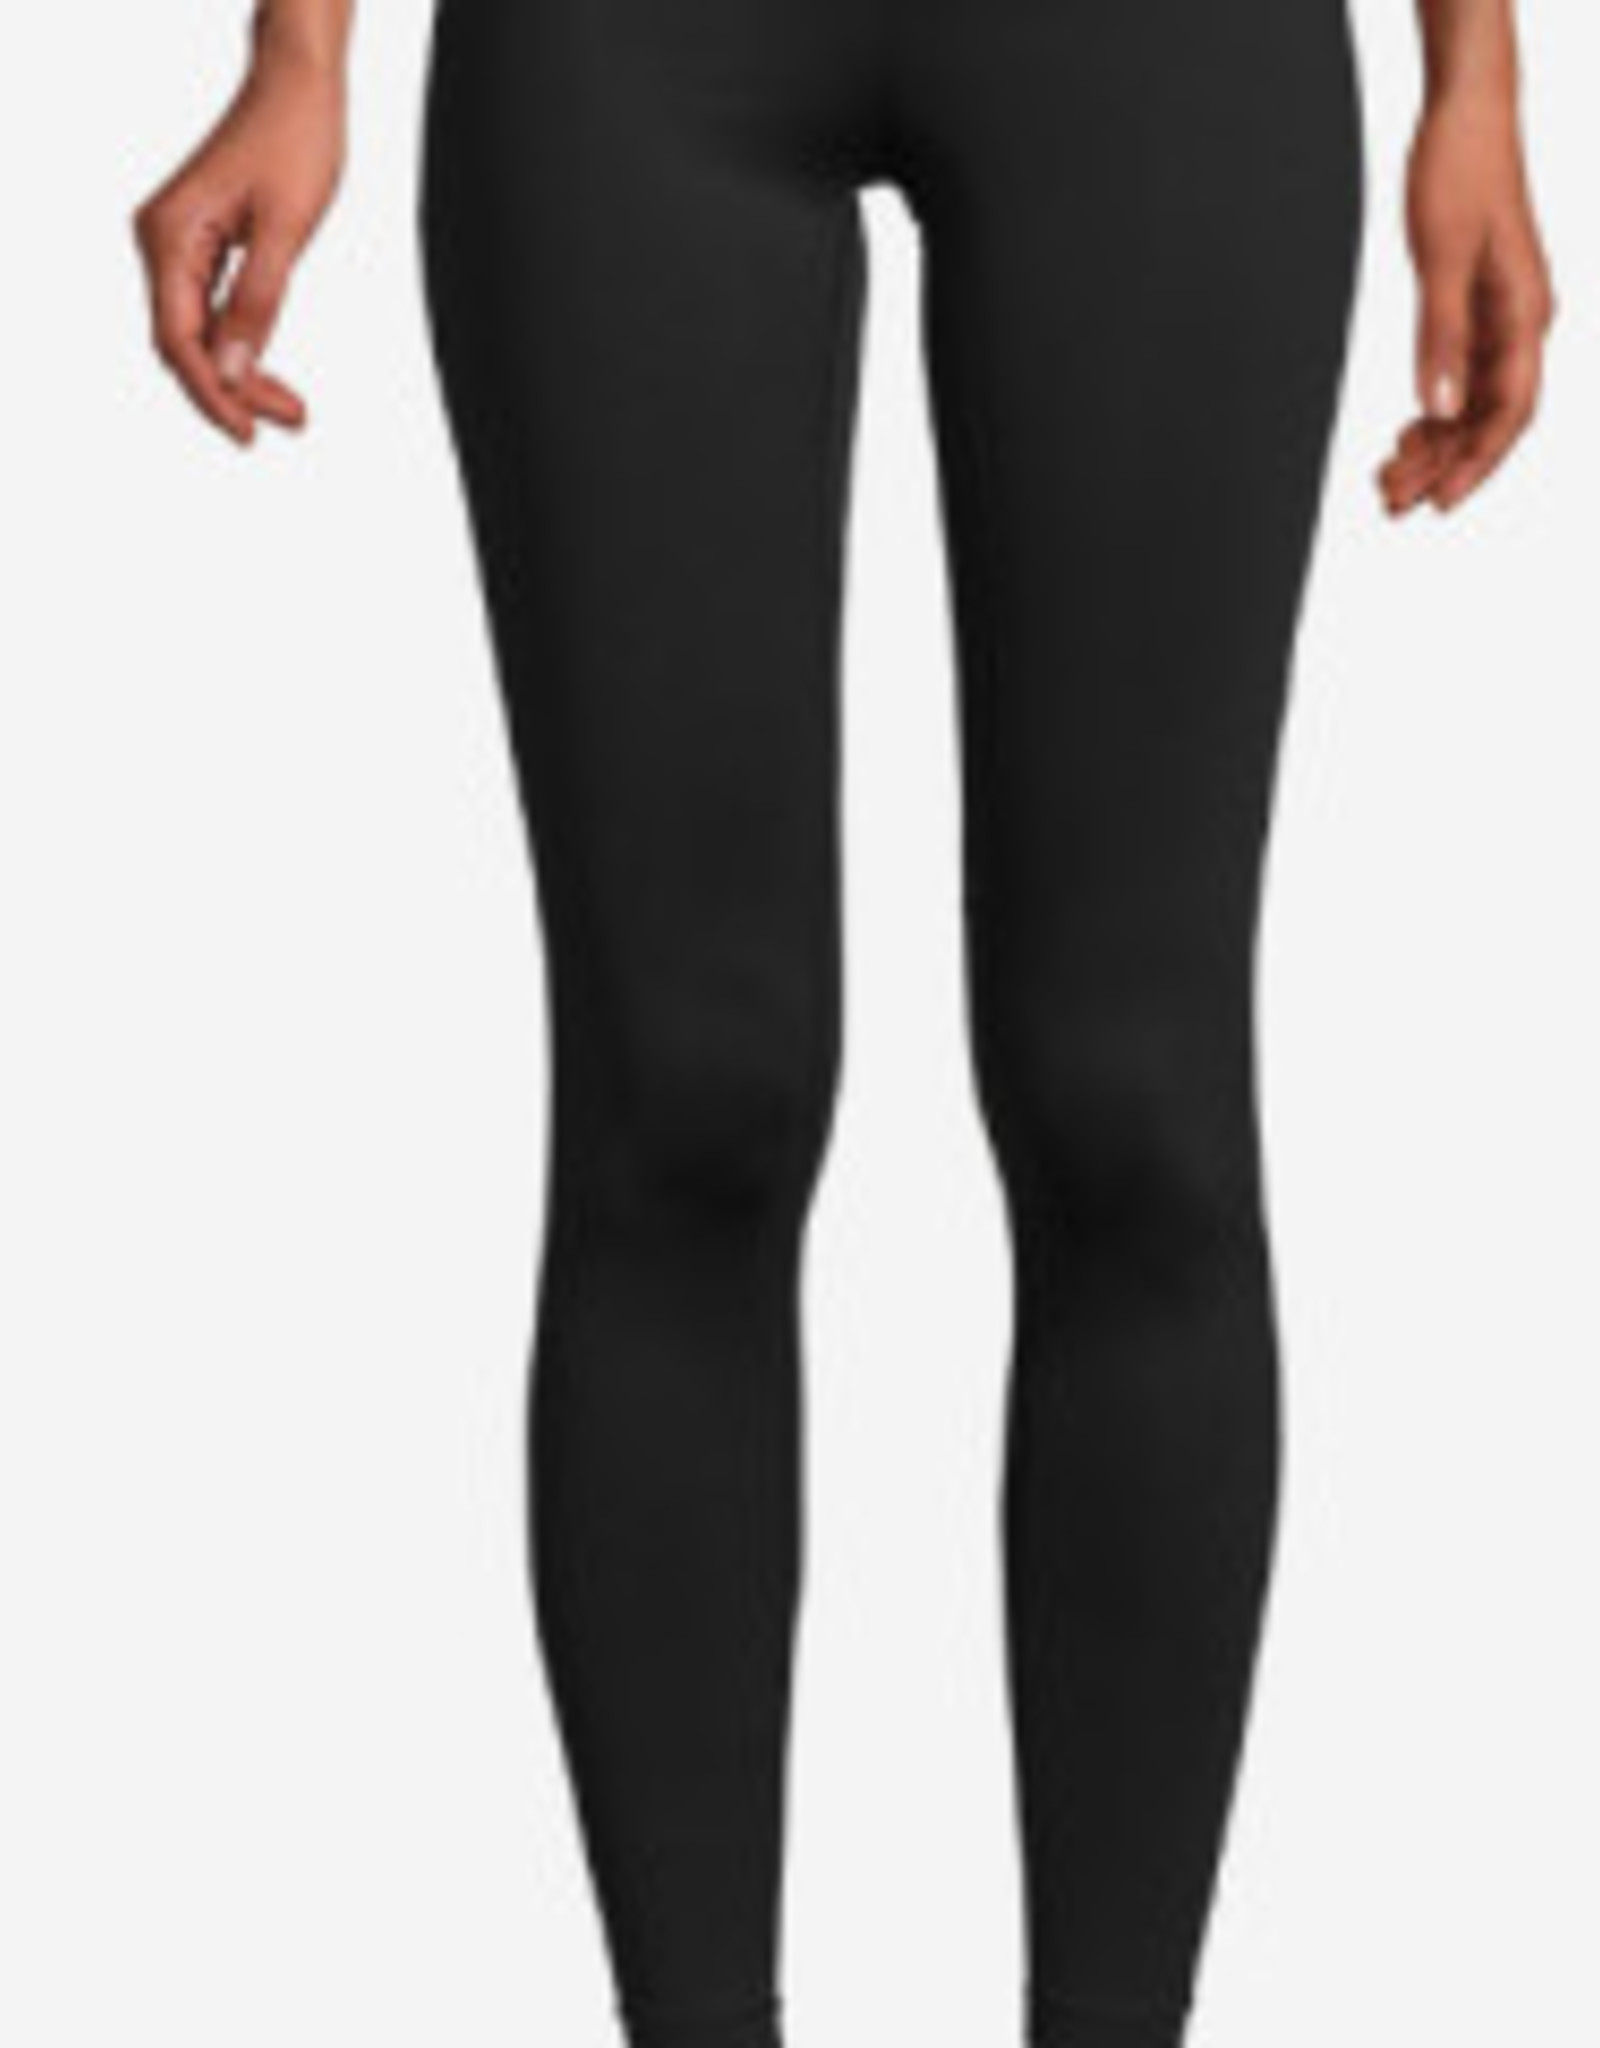 Casall 20613 Energy 7/8 tights